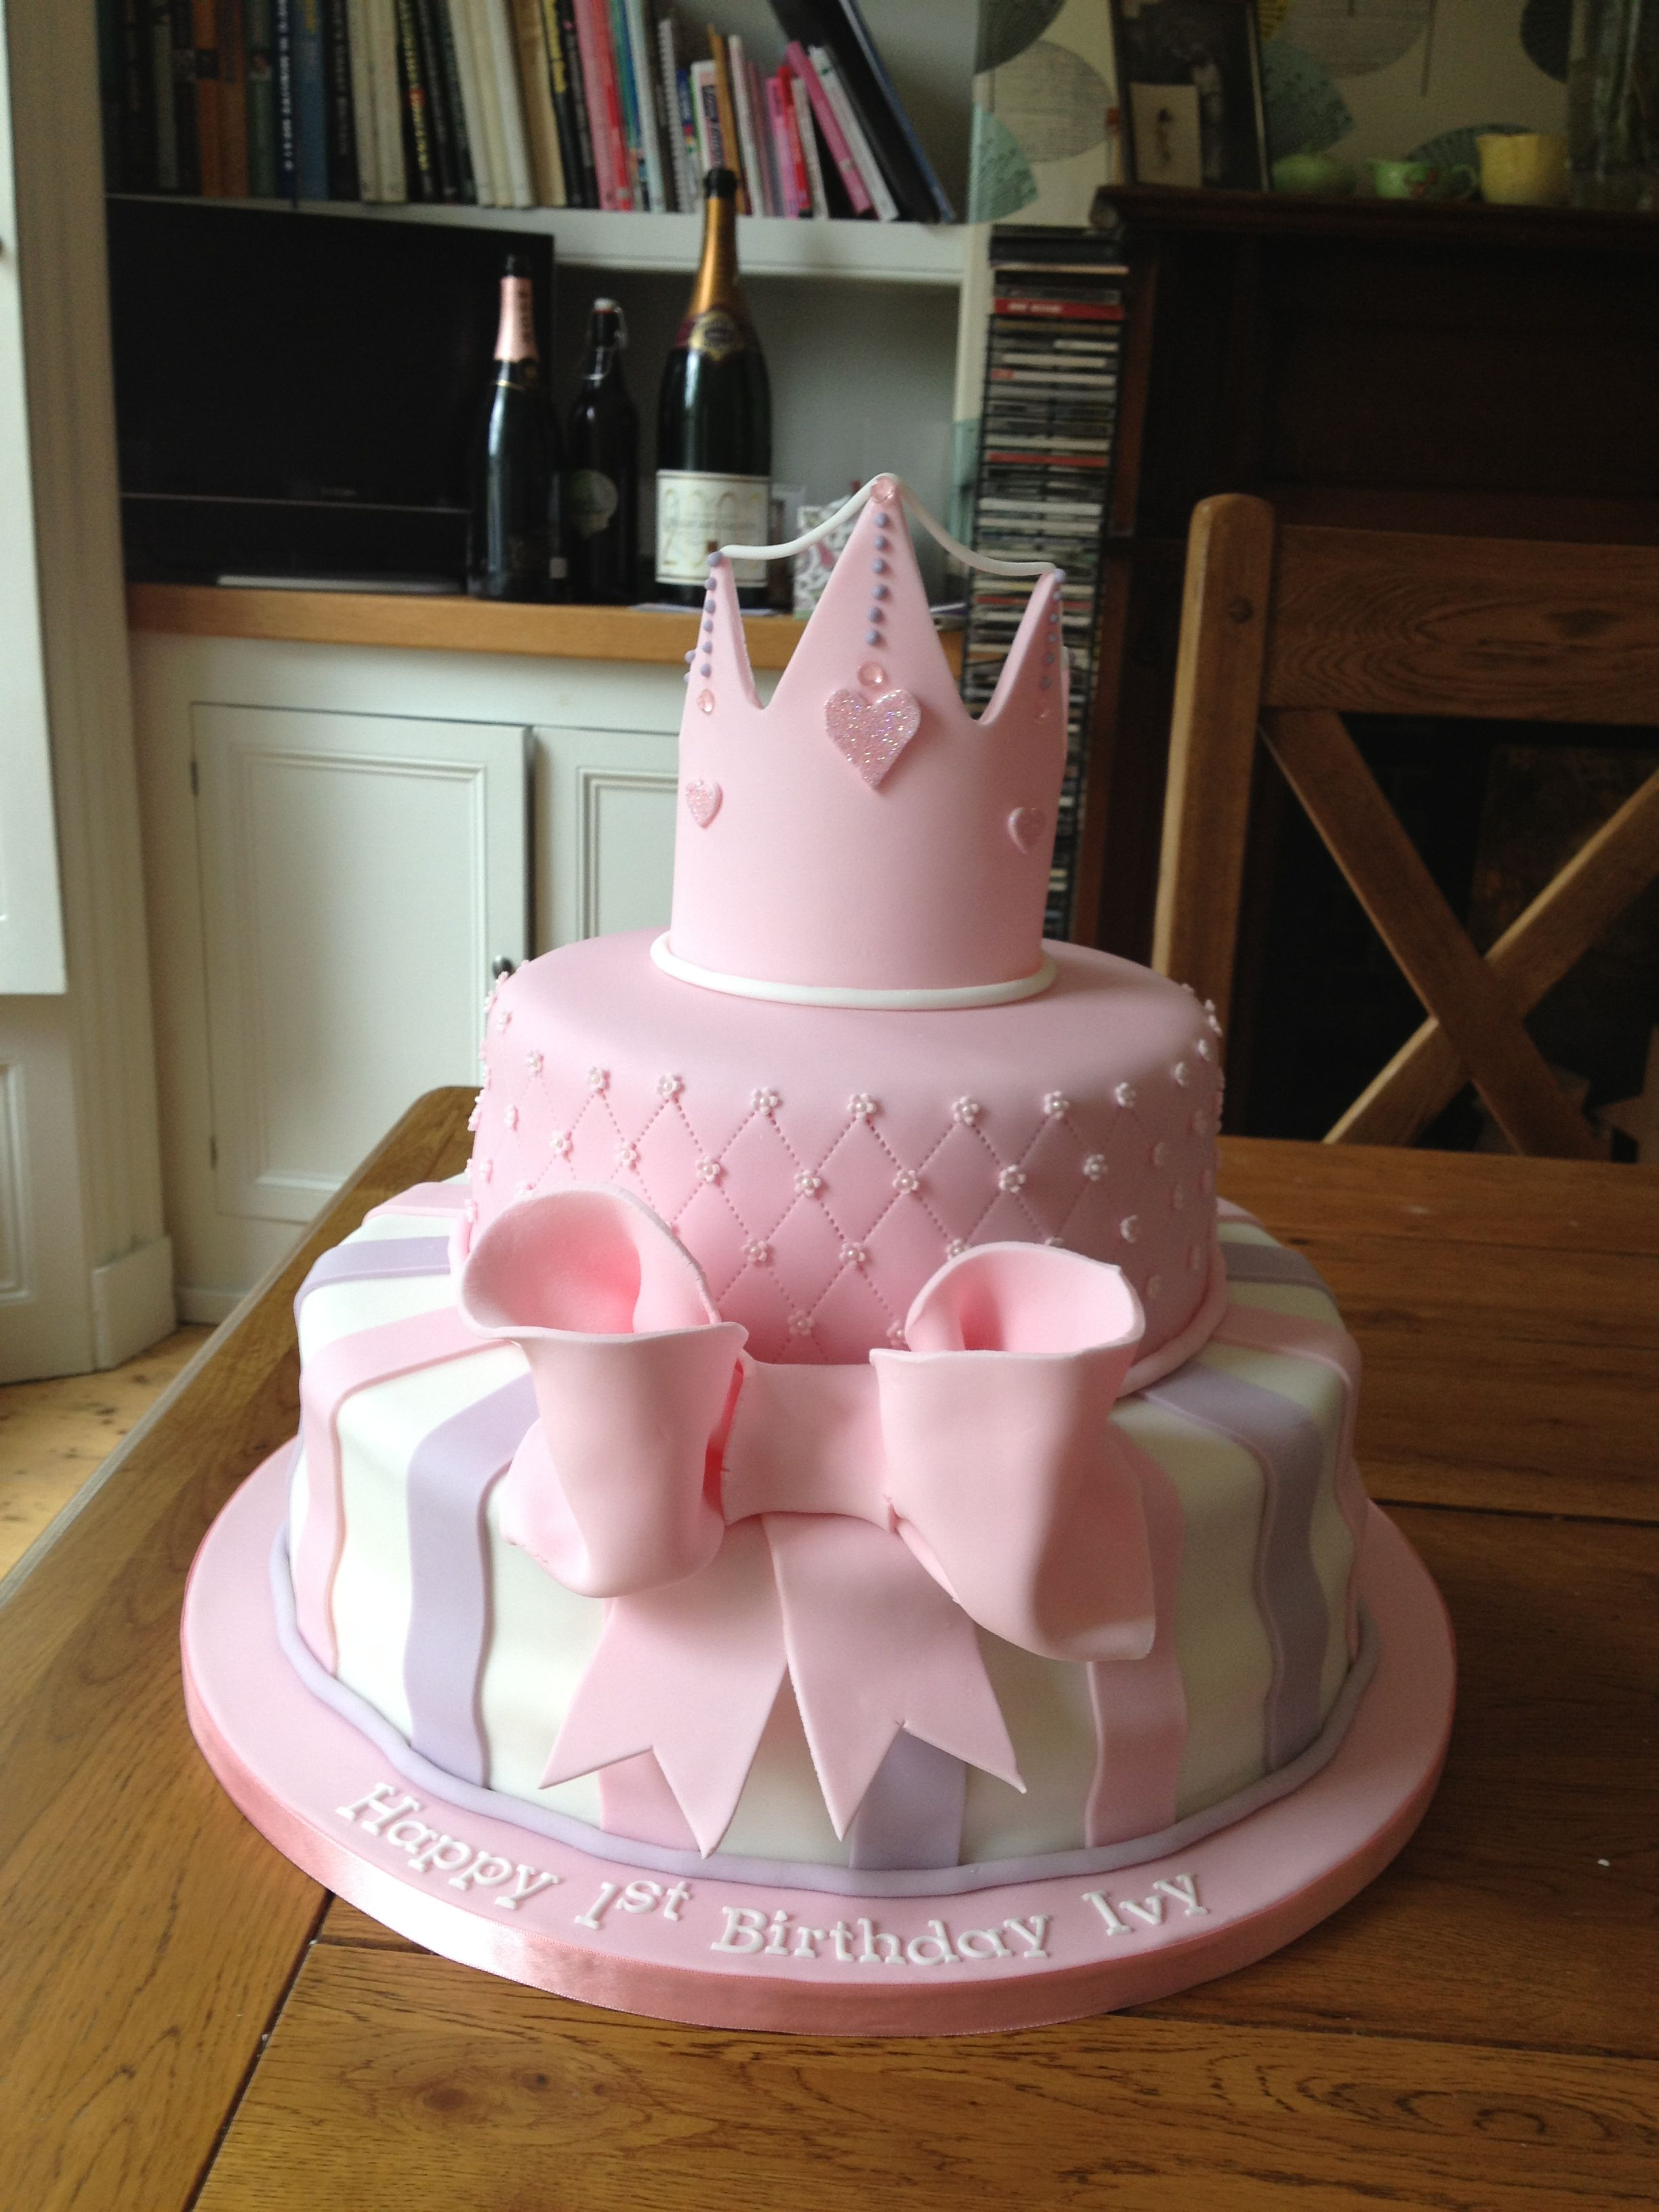 Pleasant Princess Cake For Little Girls 1St Birthday With Images 1St Personalised Birthday Cards Veneteletsinfo